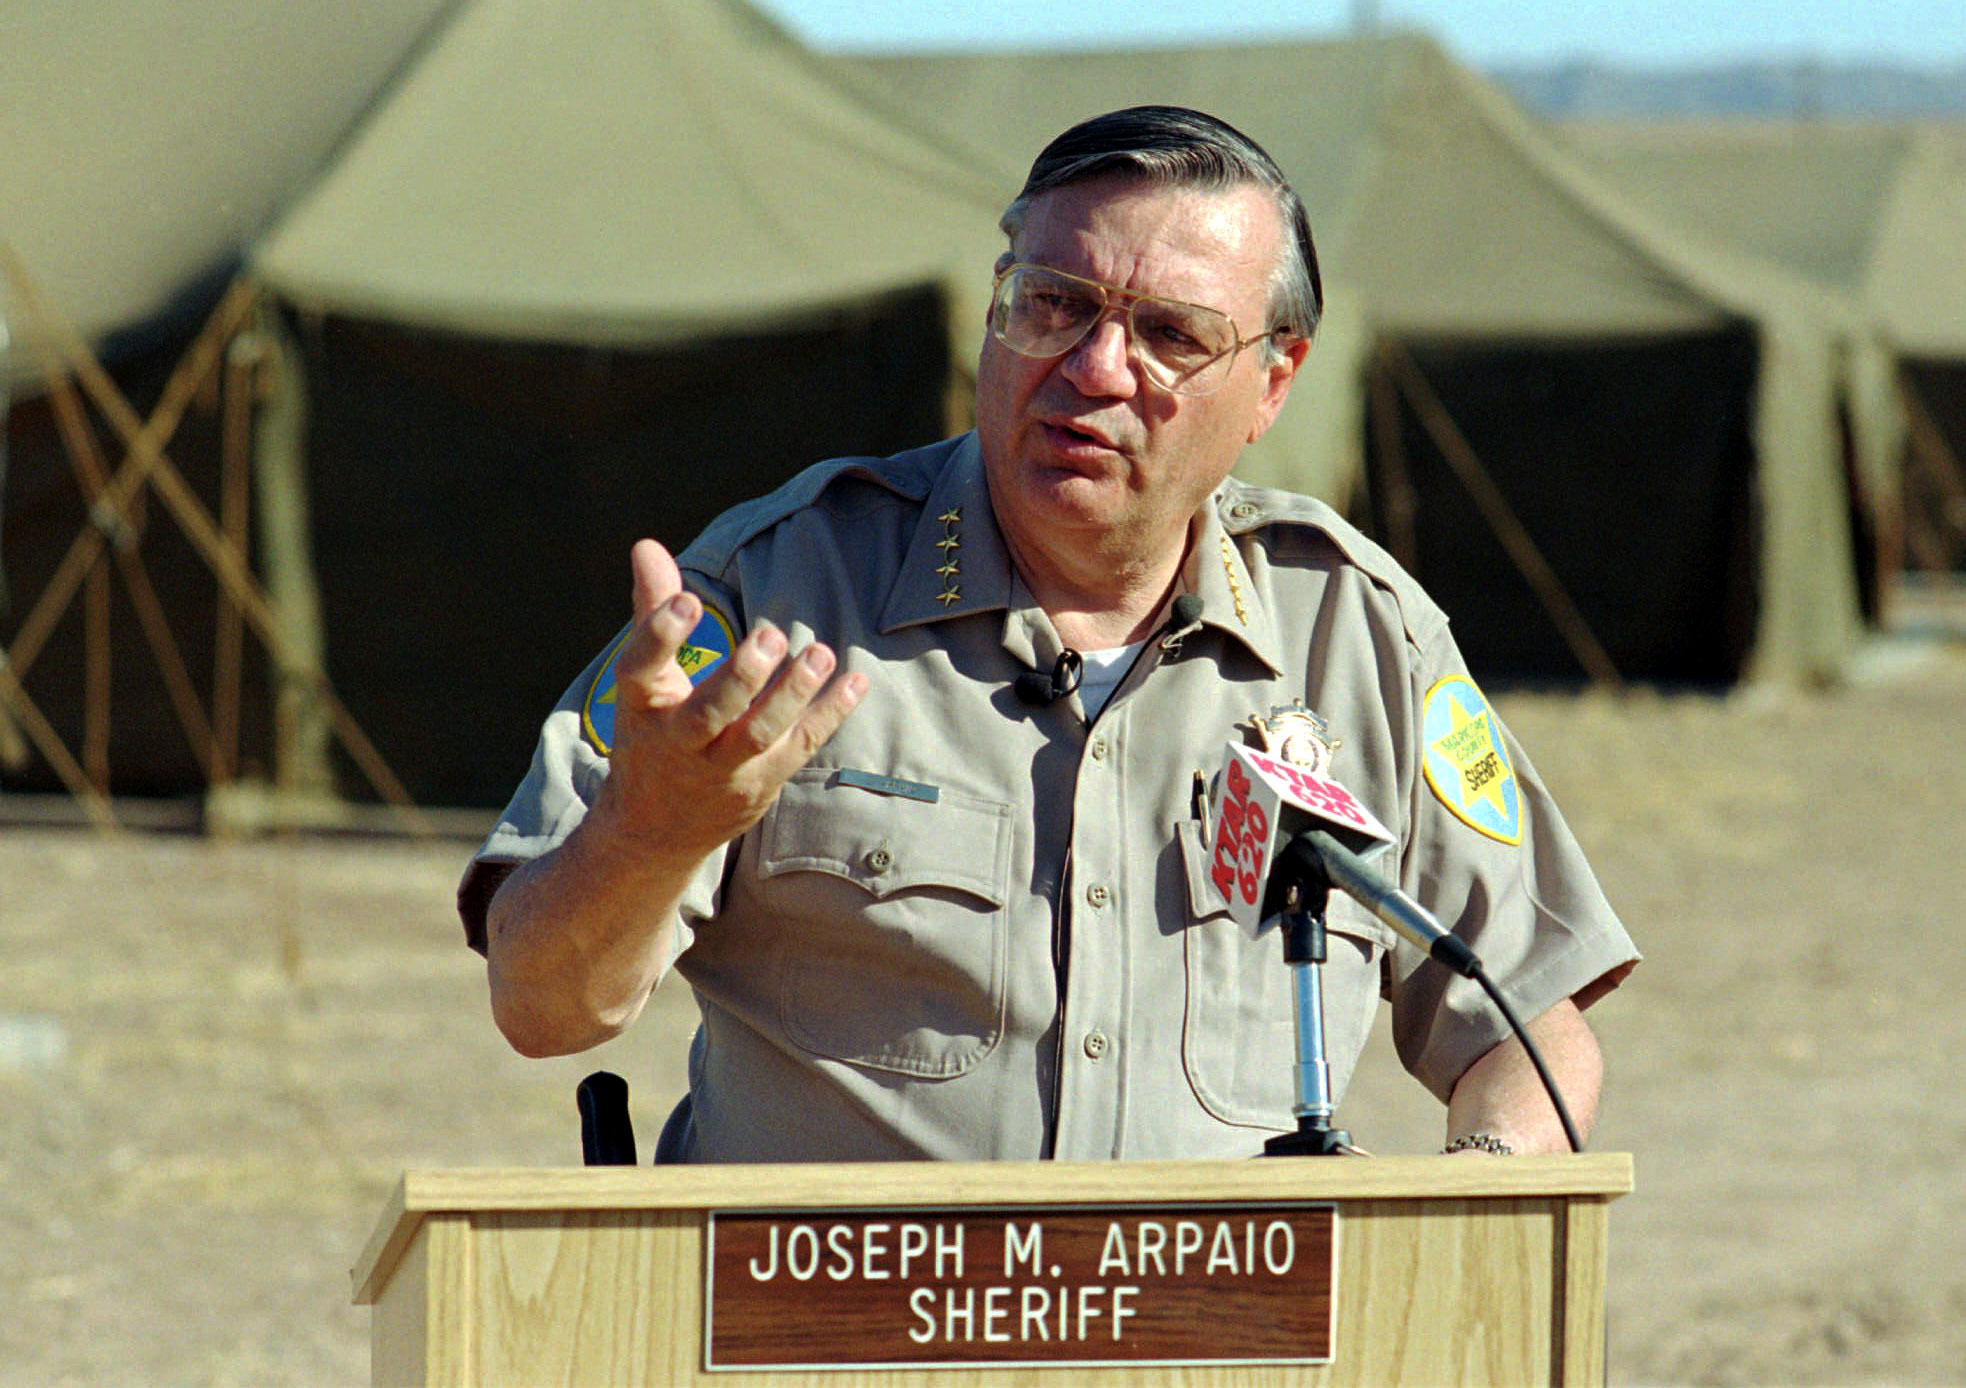 FILE--In this May 9, 1995, file photo, Maricopa County Sheriff Joseph Arpaio talks with media during a news conference announcing the opening of Tent City II in Phoenix, Ariz. Arpaio has been convicted of a criminal charge Monday, July 31, 2017, for disobeying a court order to stop traffic patrols that targeted immigrants in a conviction that marks a final rebuke for the former sheriff and politician who once drew strong popularity from such crackdowns but was booted from office amid voter frustrations over his deepening legal troubles. (AP Photo/T.J. Sokol, file)